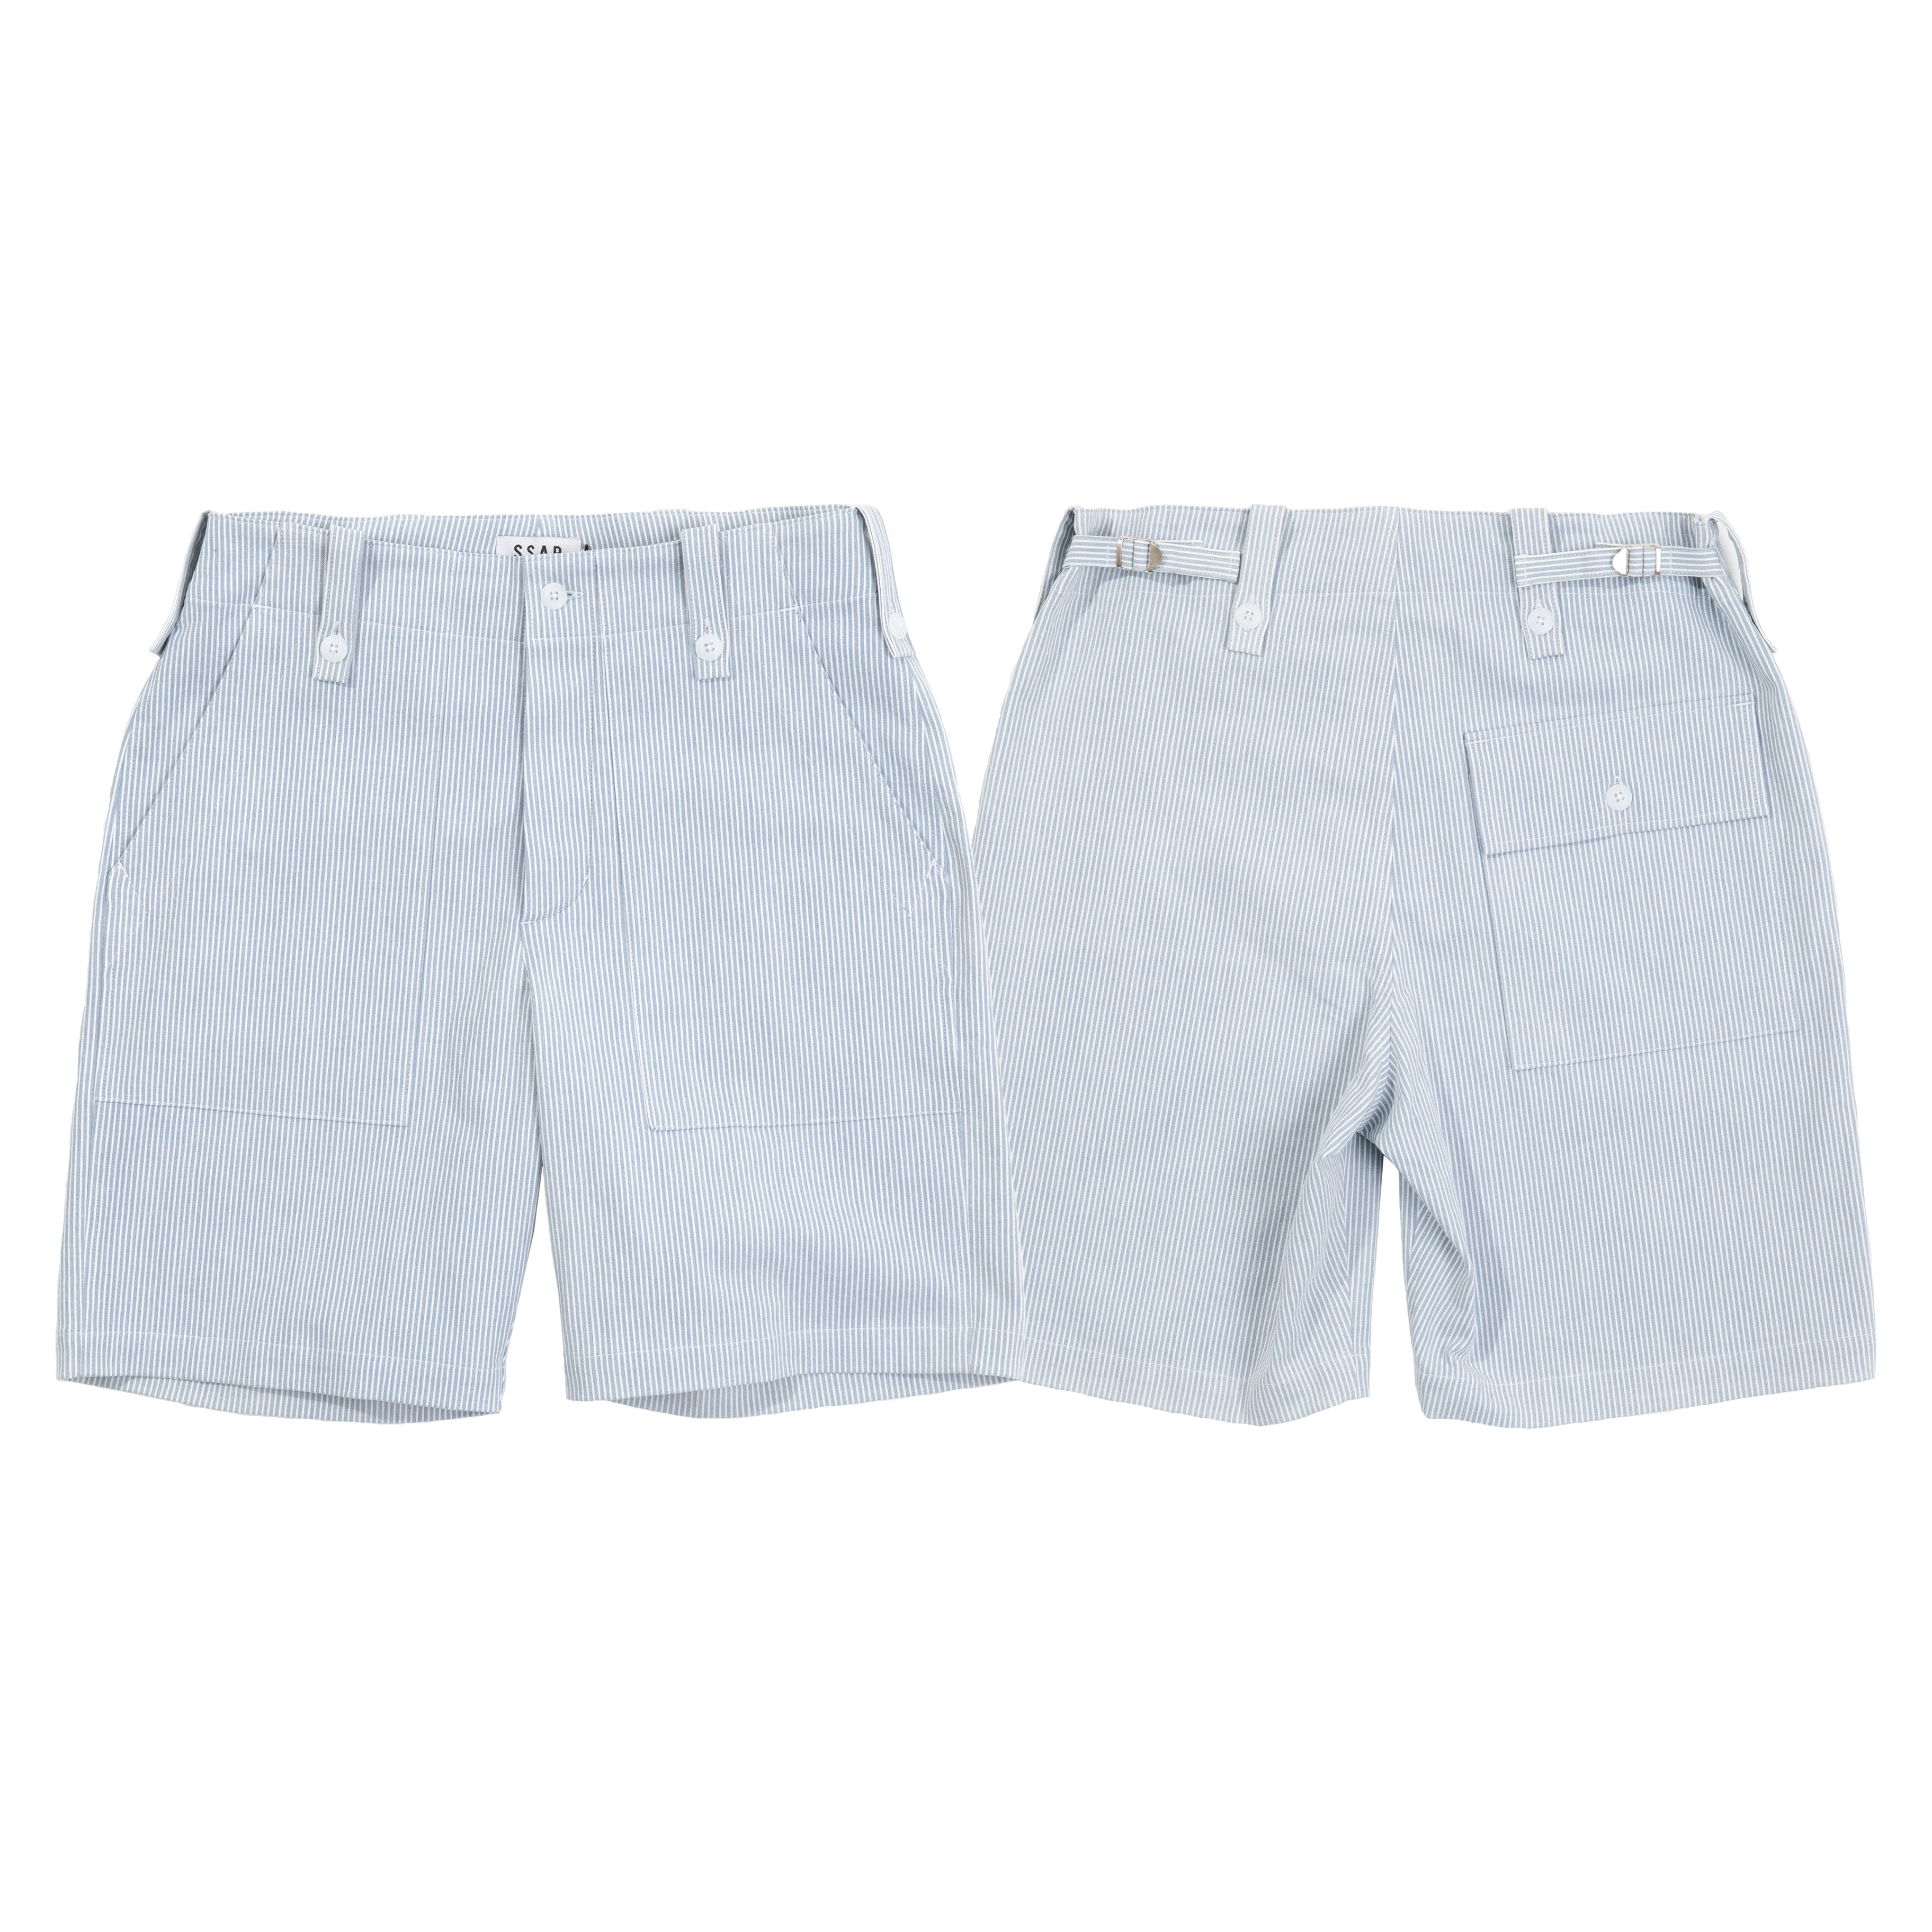 JACK'S MILITARY SHORTS (HICKORY)